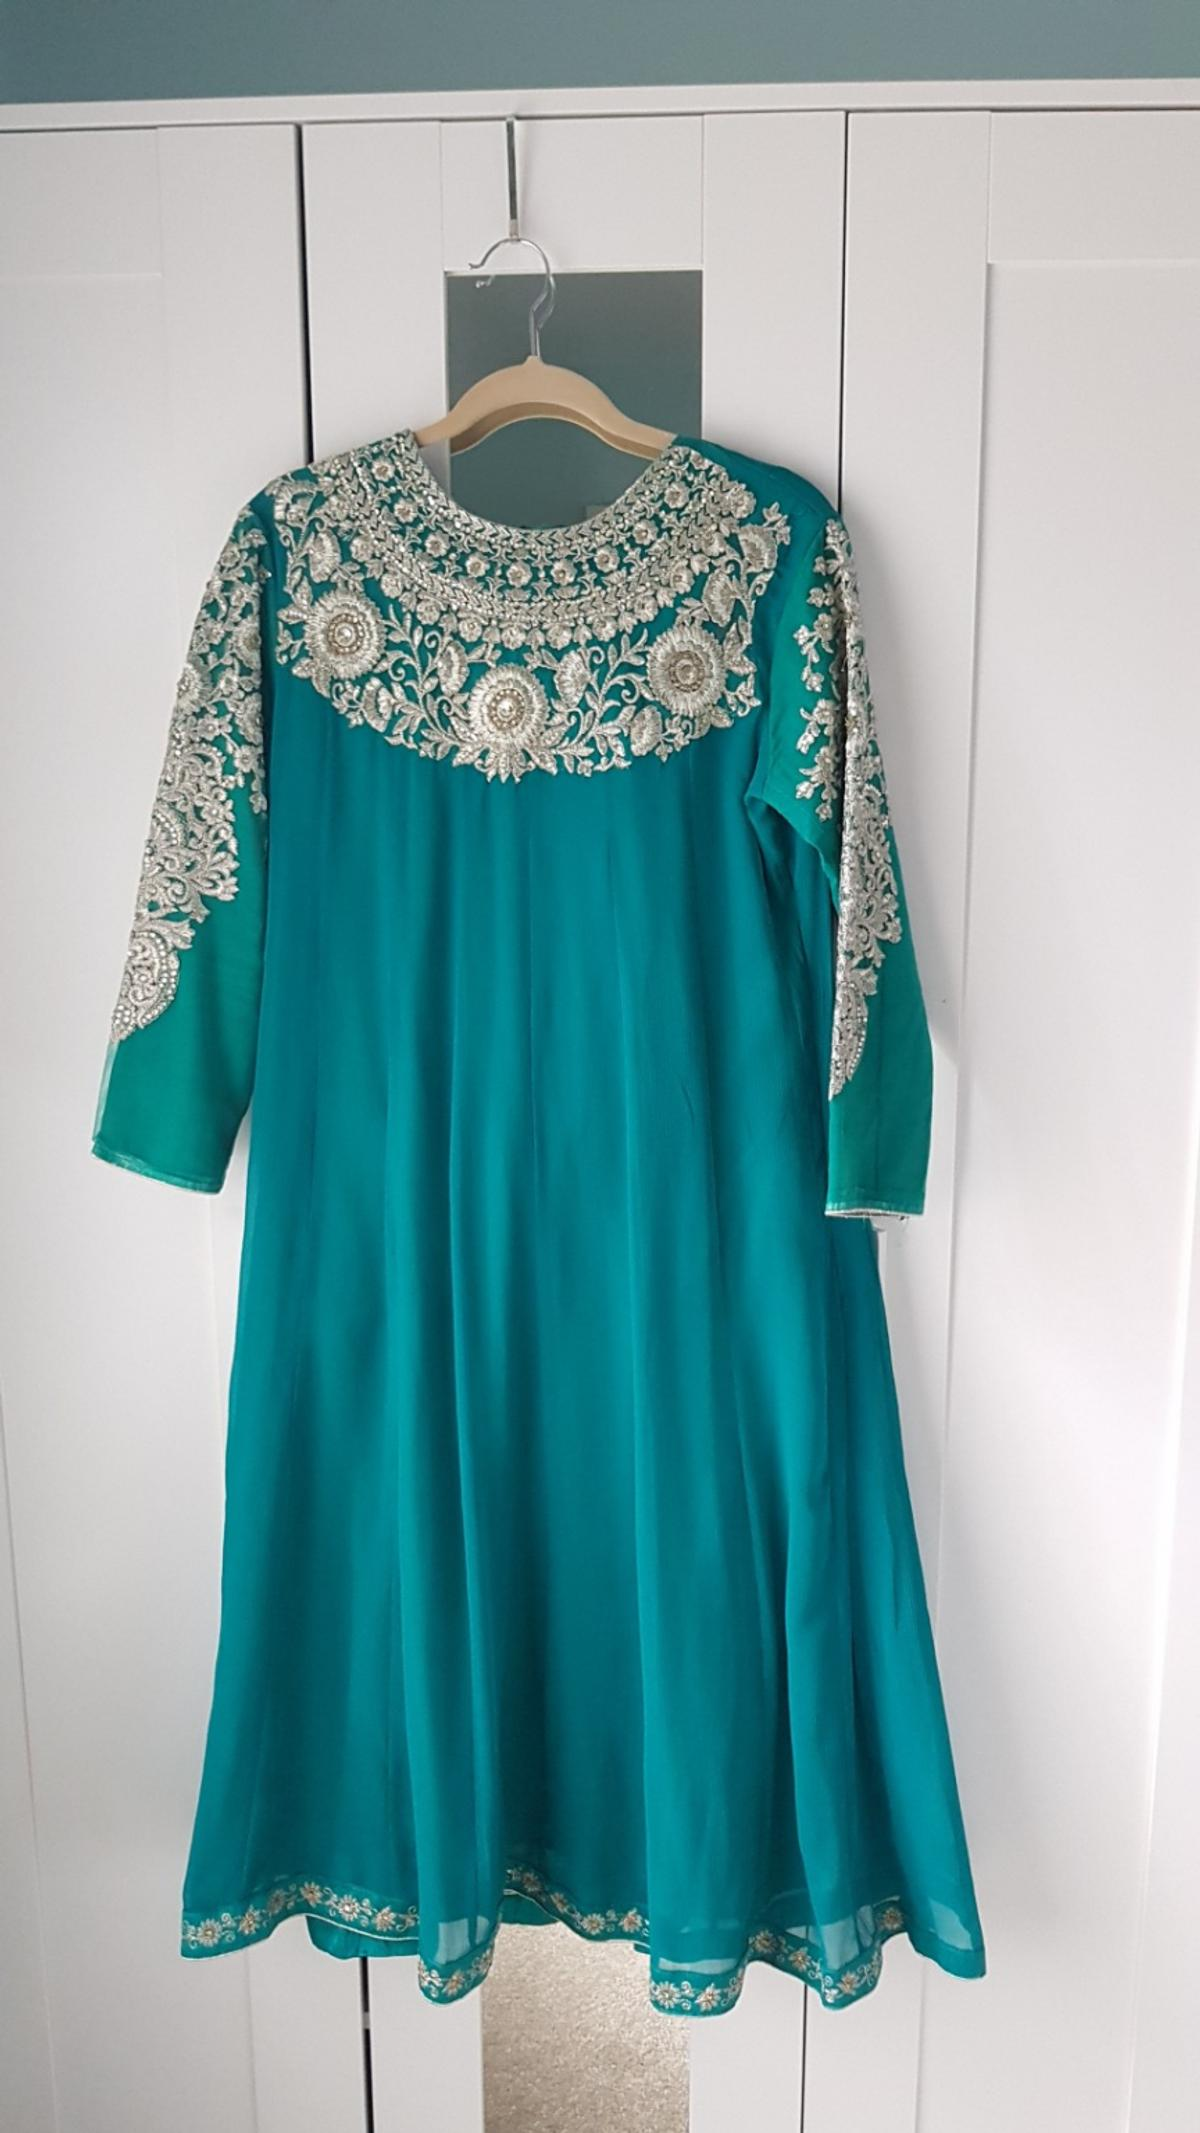 size 14 with trousers and dupatta